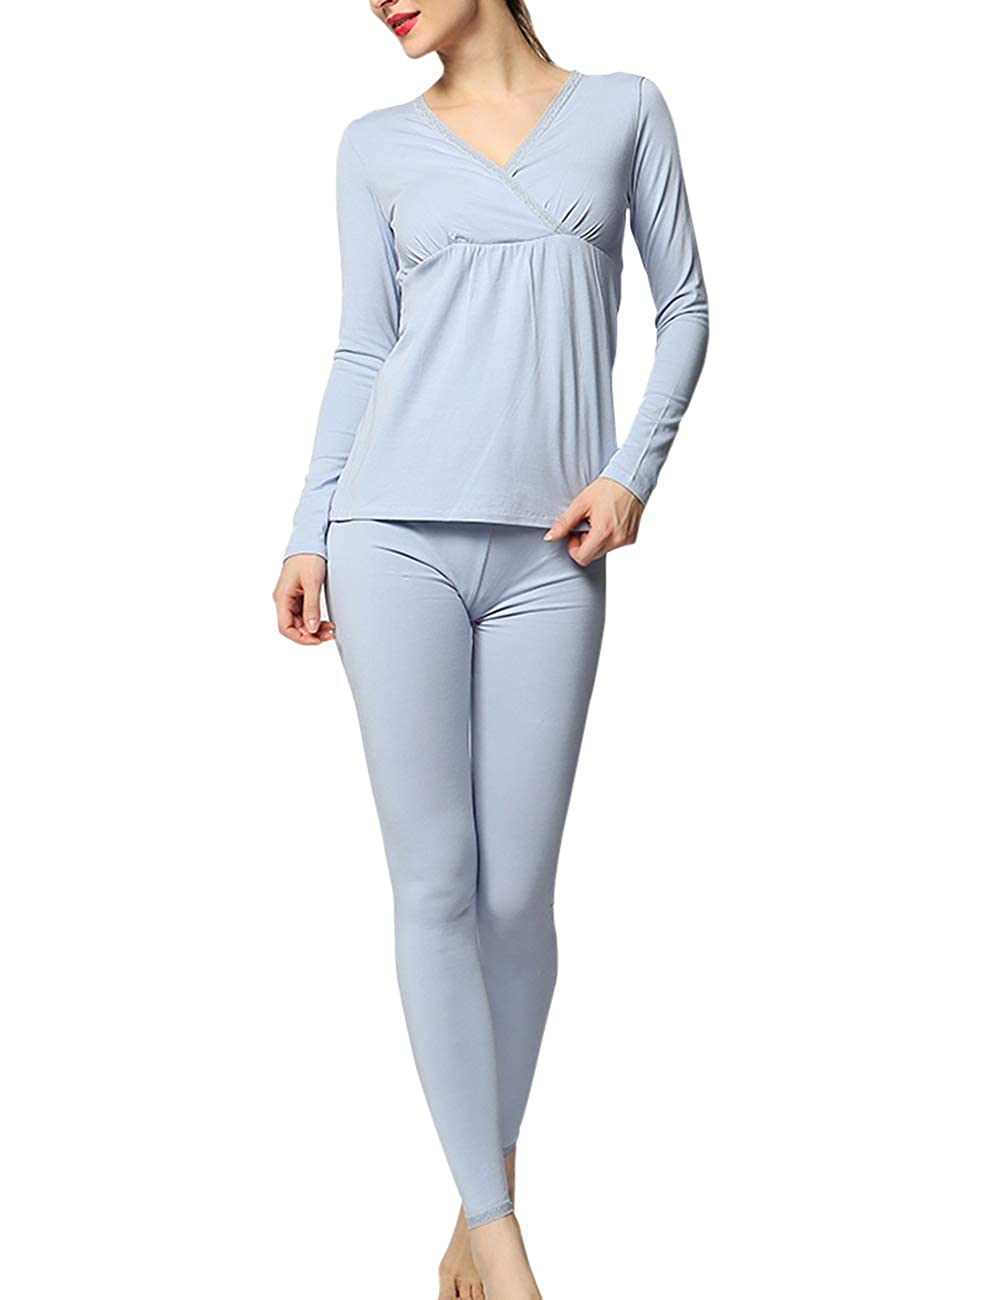 Zhhlinyuan Women's Modal Pregnancy Pajamas Set - Long Sleeve Nursing Tops & Leggings